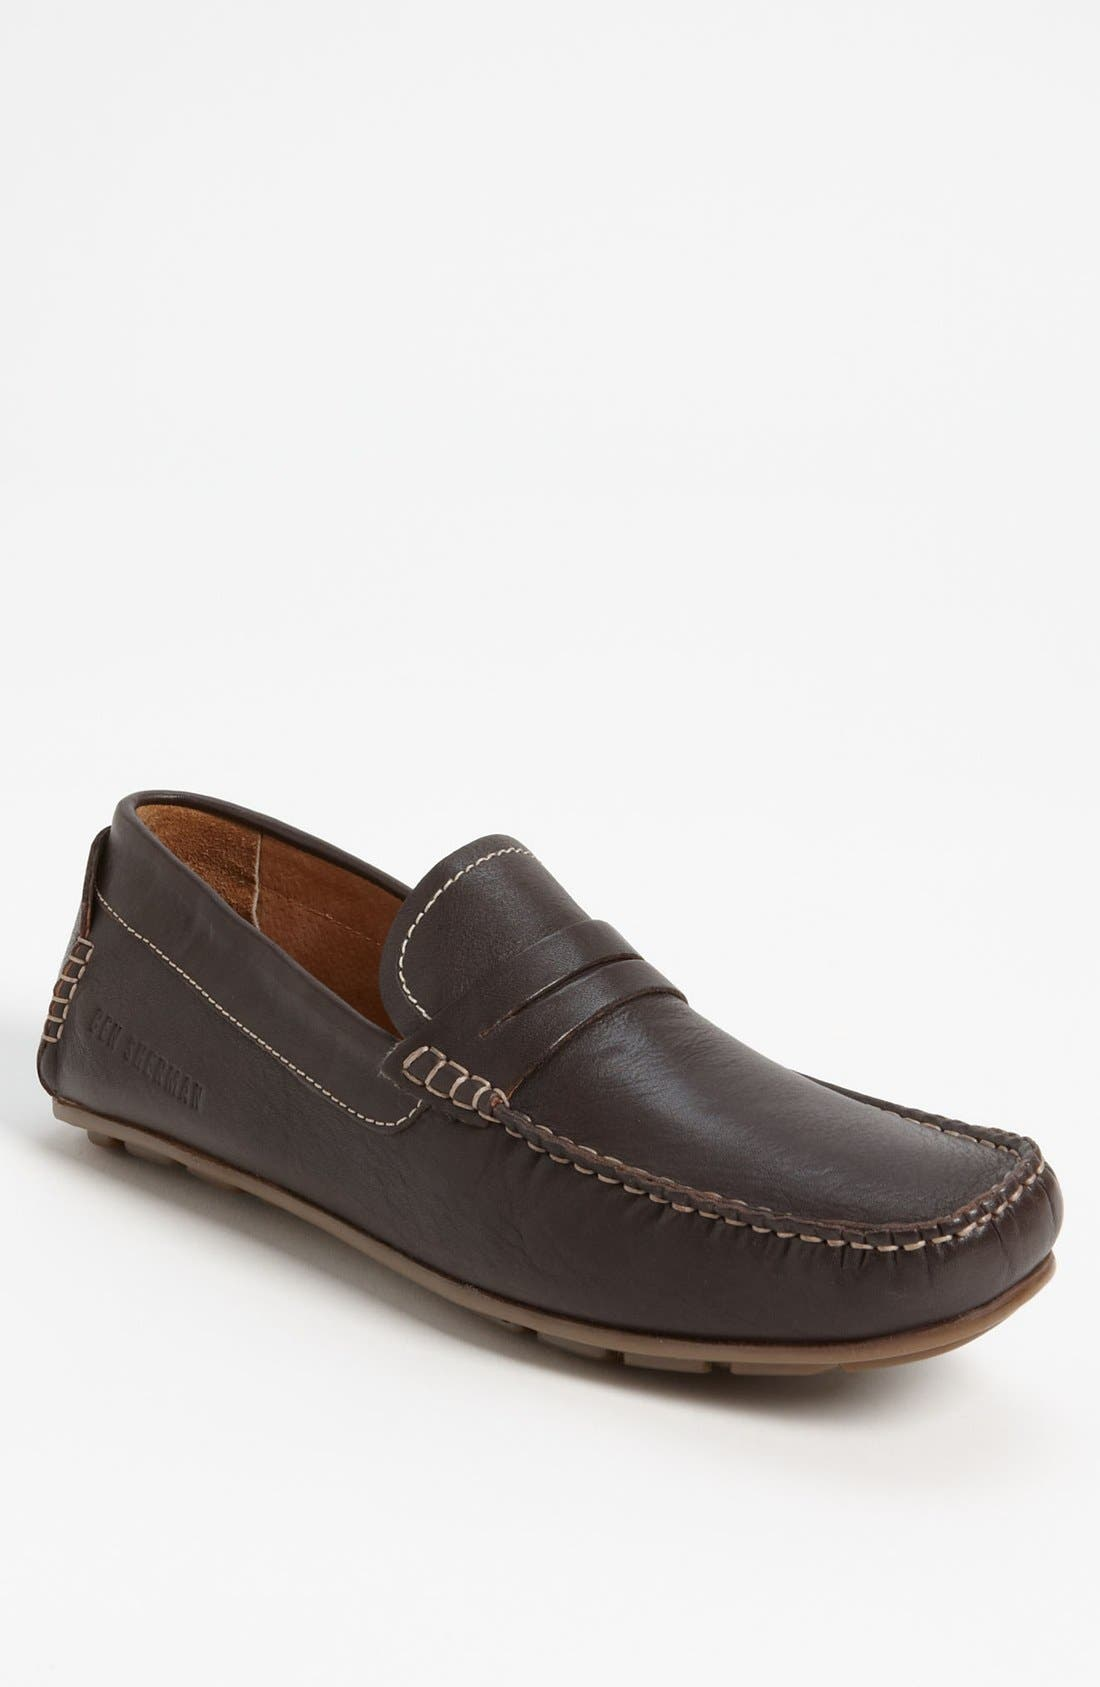 Main Image - Ben Sherman 'Kaleb' Loafer